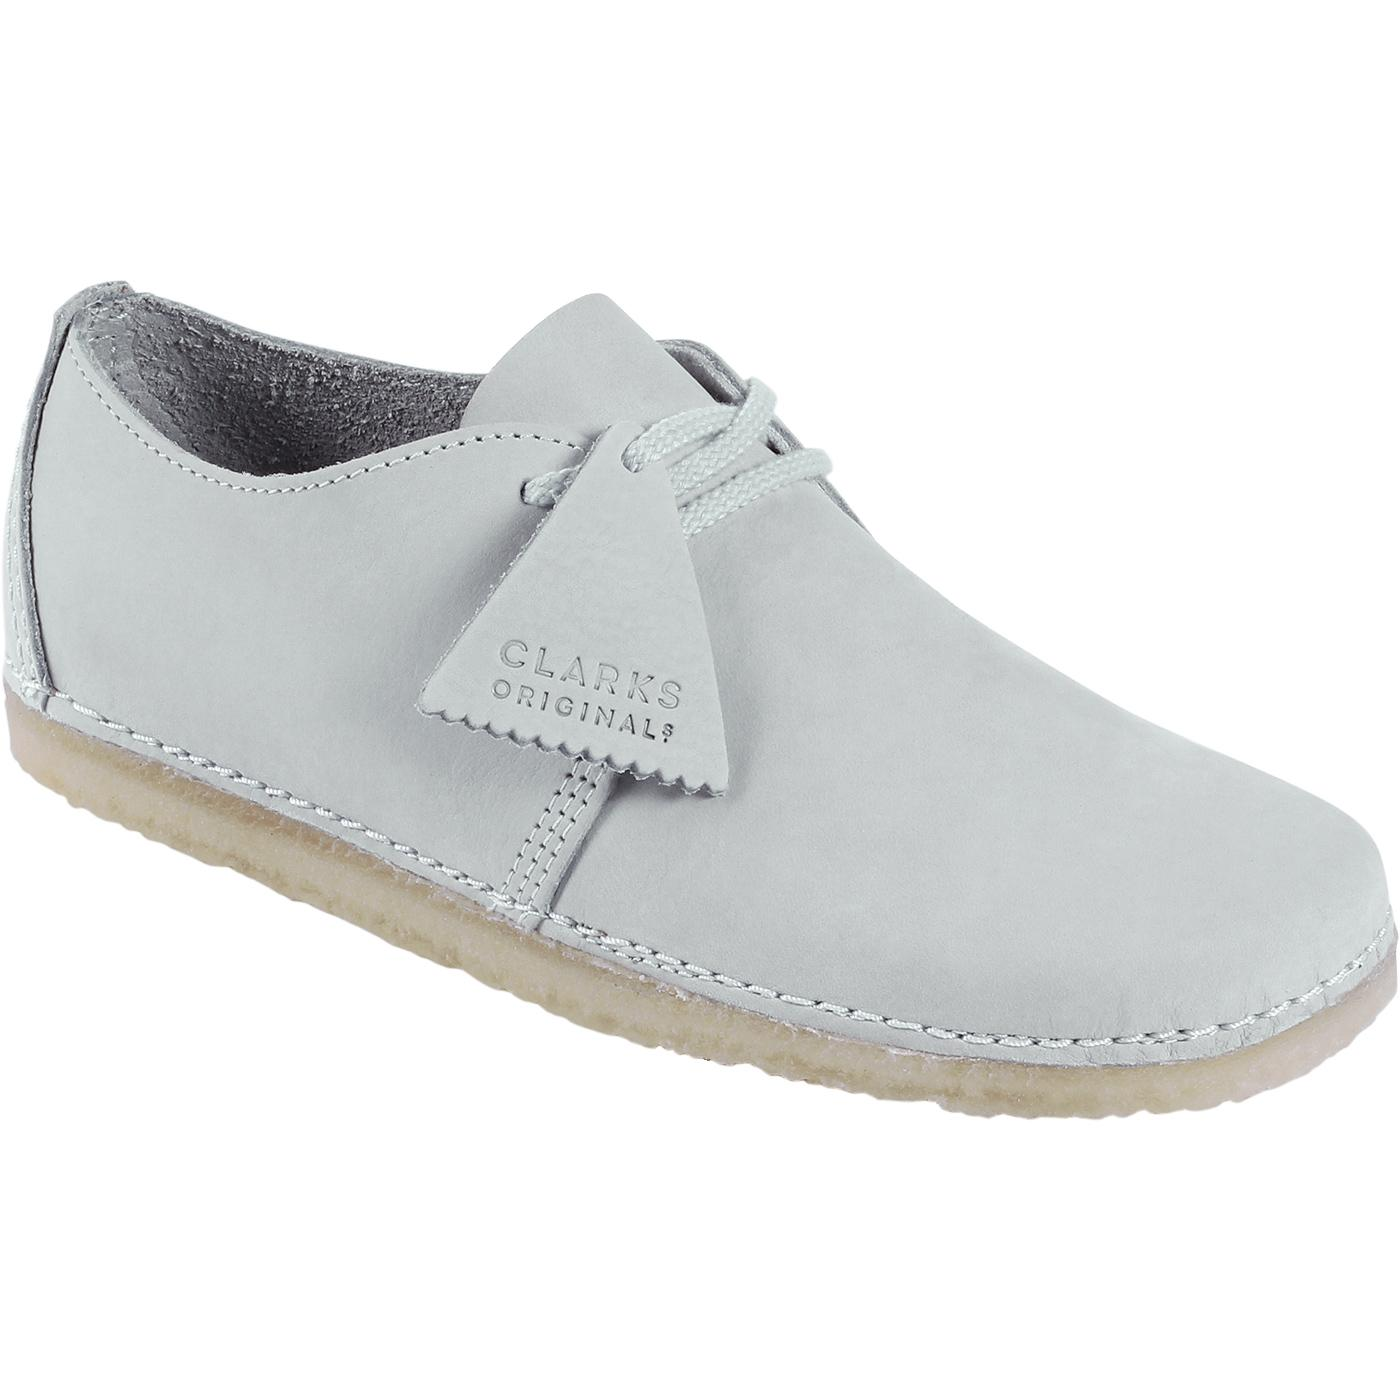 Ashton CLARKS ORIGINALS Women's Nubuck Shoes (LB)